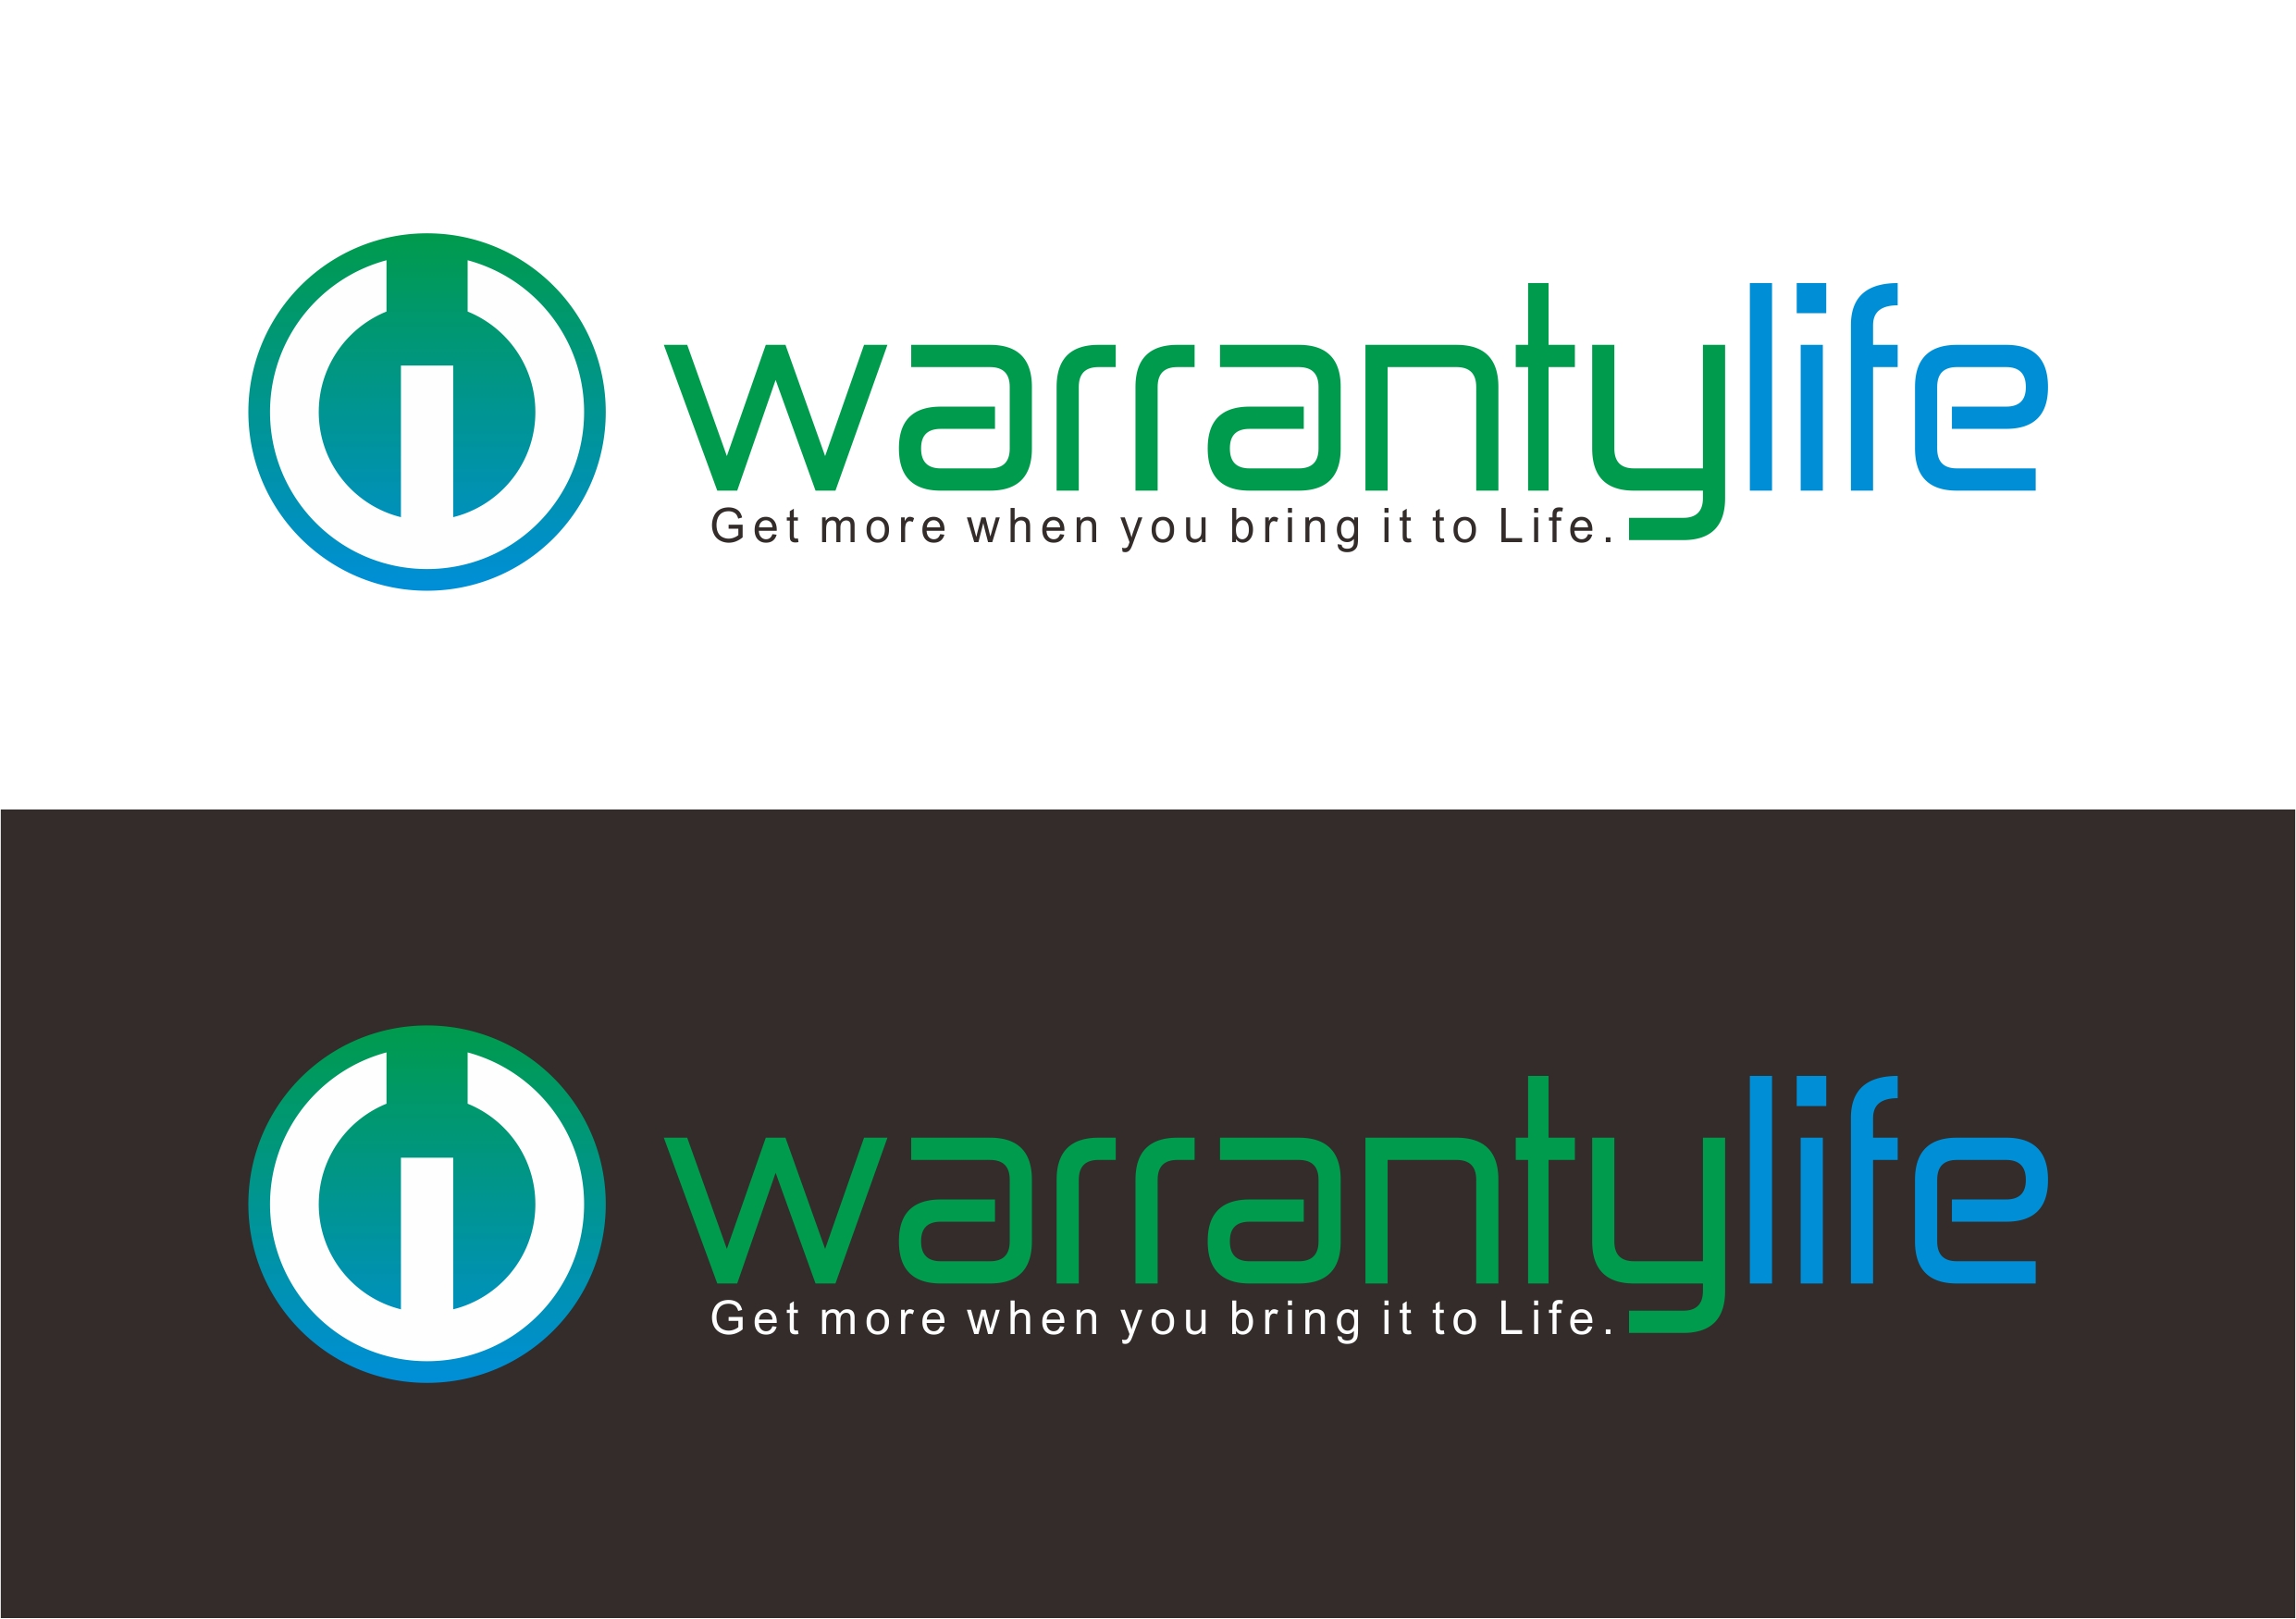 Logo Design by Teguh Mudjianto - Entry No. 14 in the Logo Design Contest WarrantyLife Logo Design.